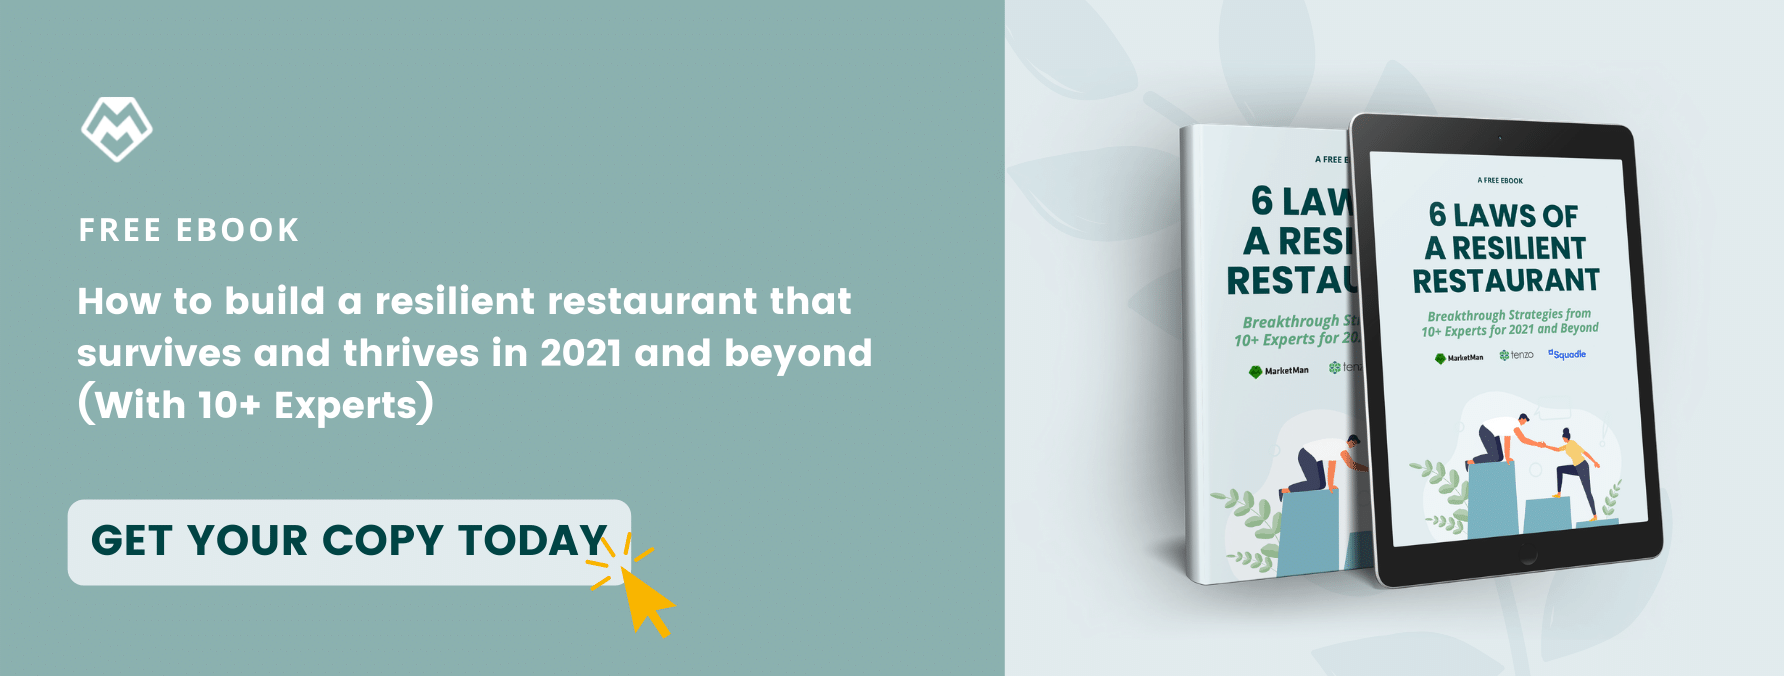 """6 Laws of a Resilient Restaurant Ebook Mockup with a """"Get Your Copy Today"""" button"""